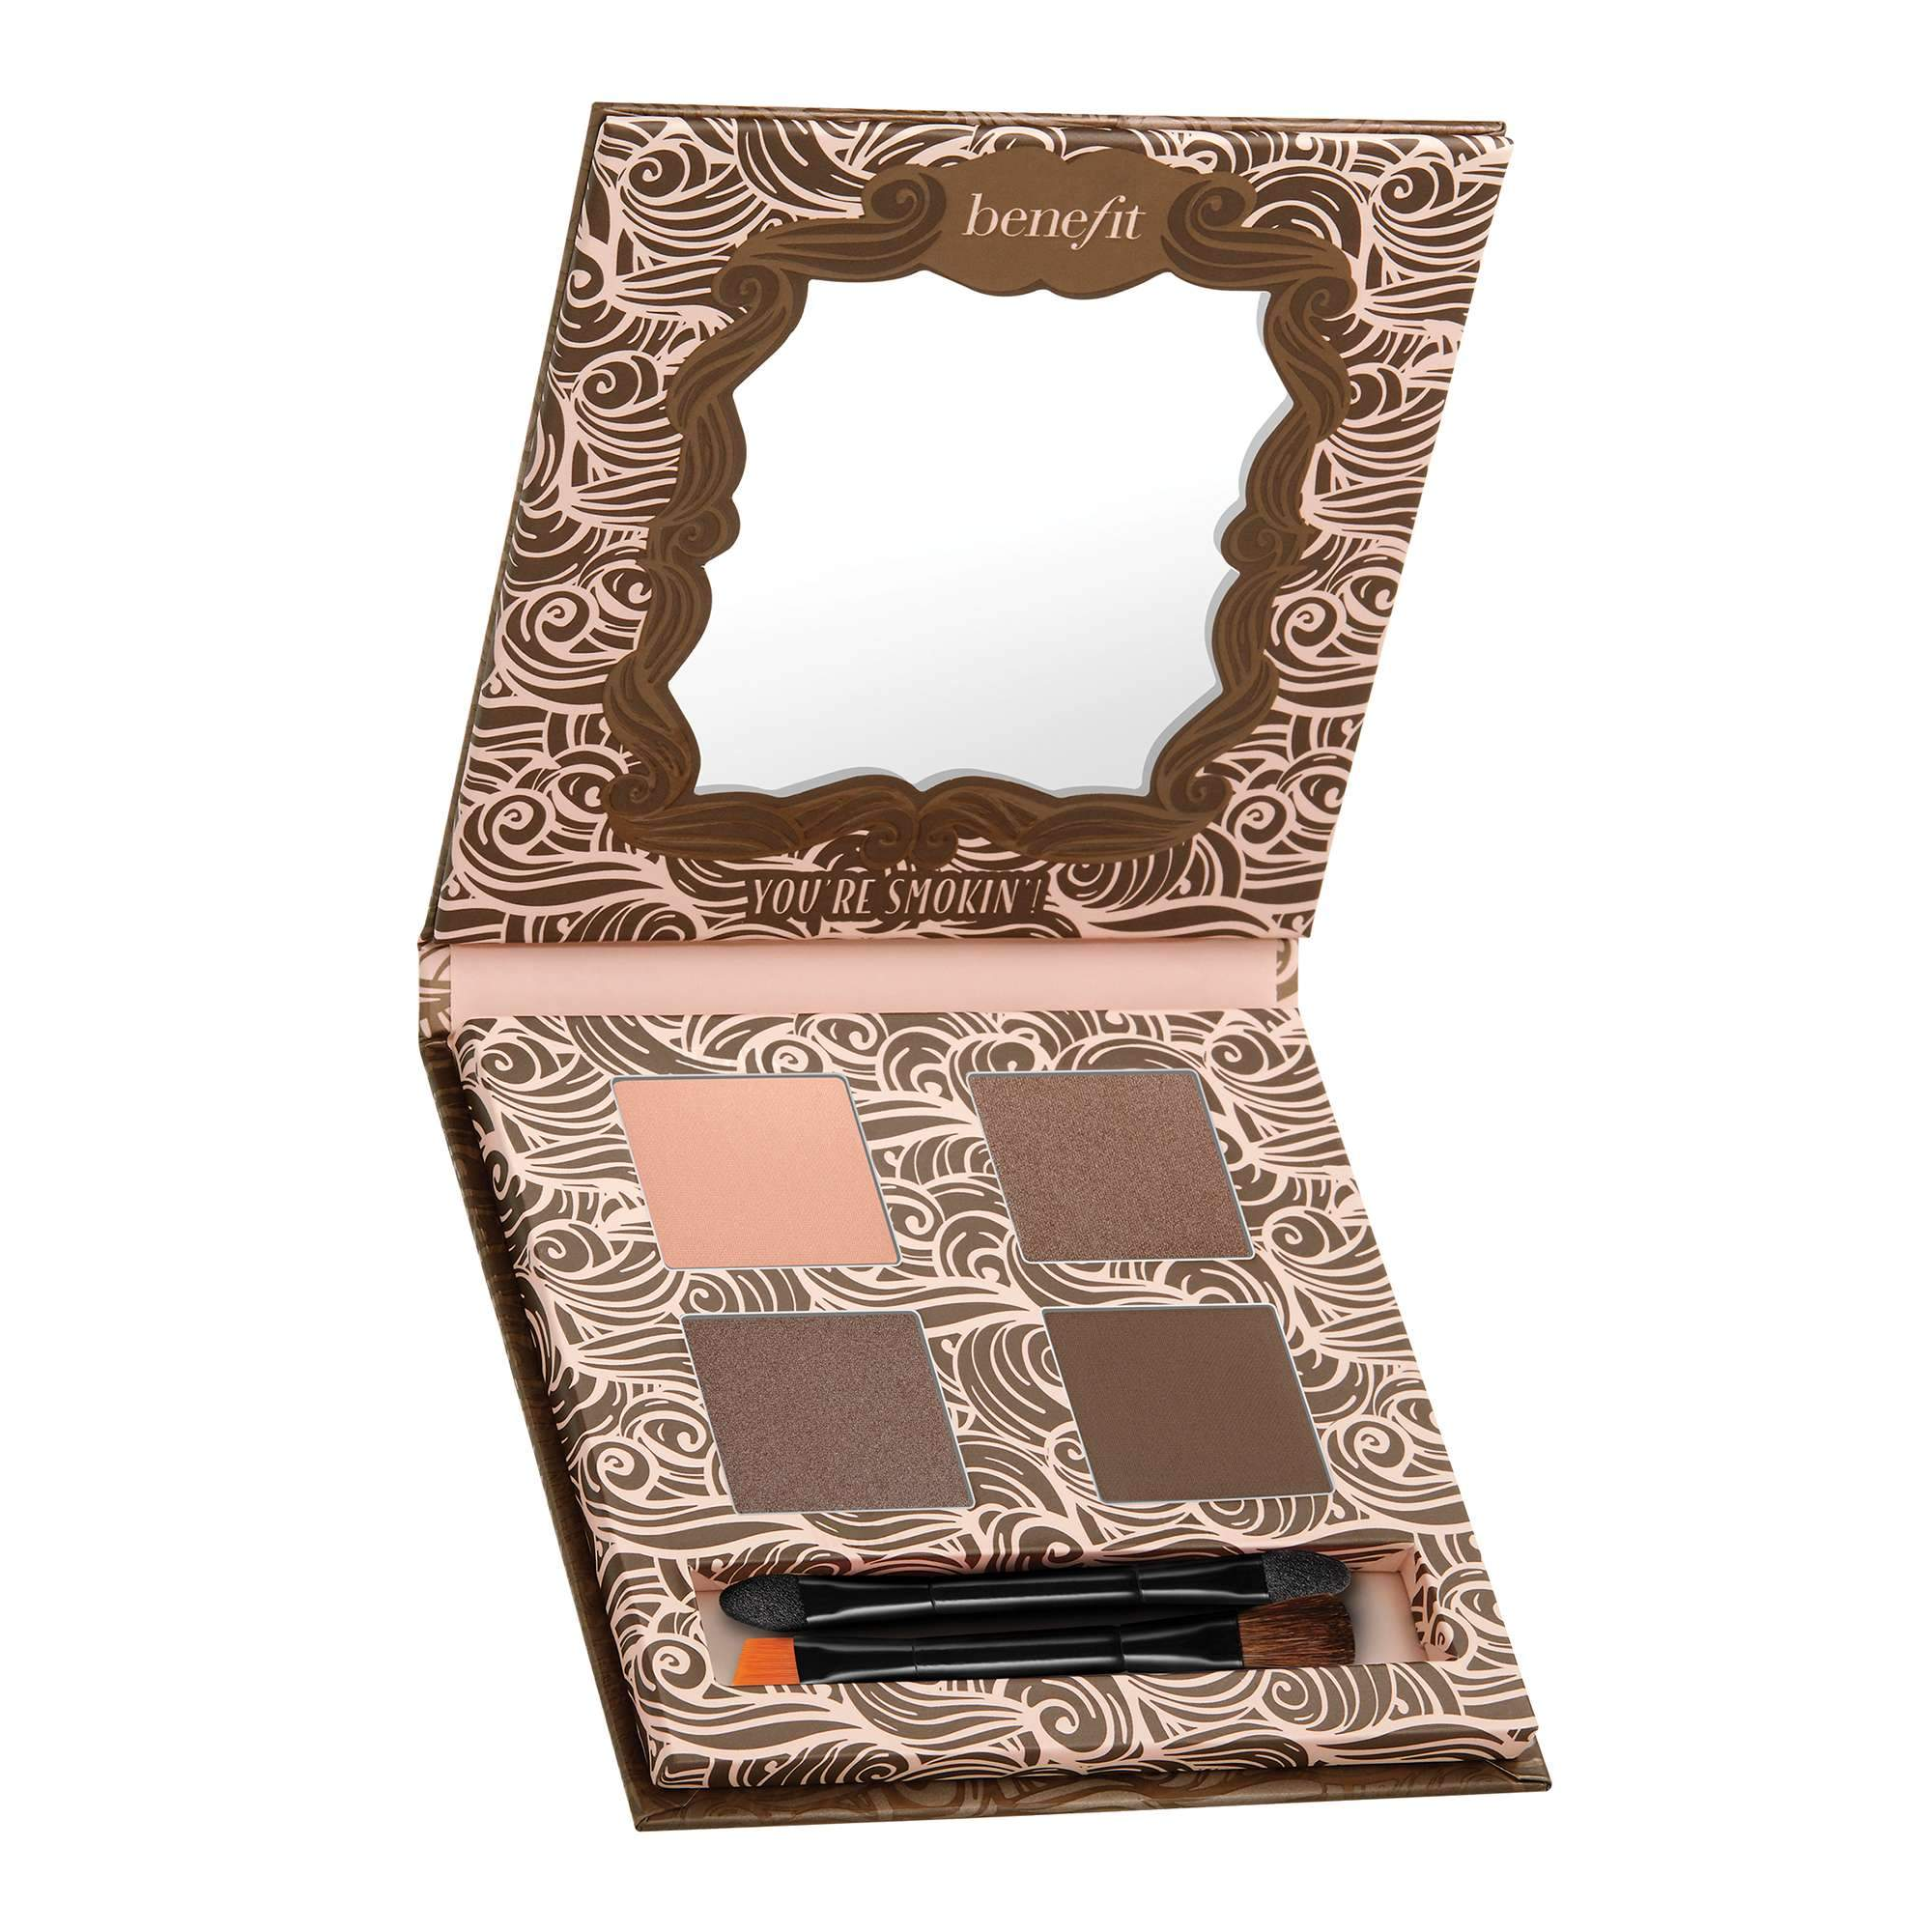 BENEFIT SMOKY EYE PALETTE